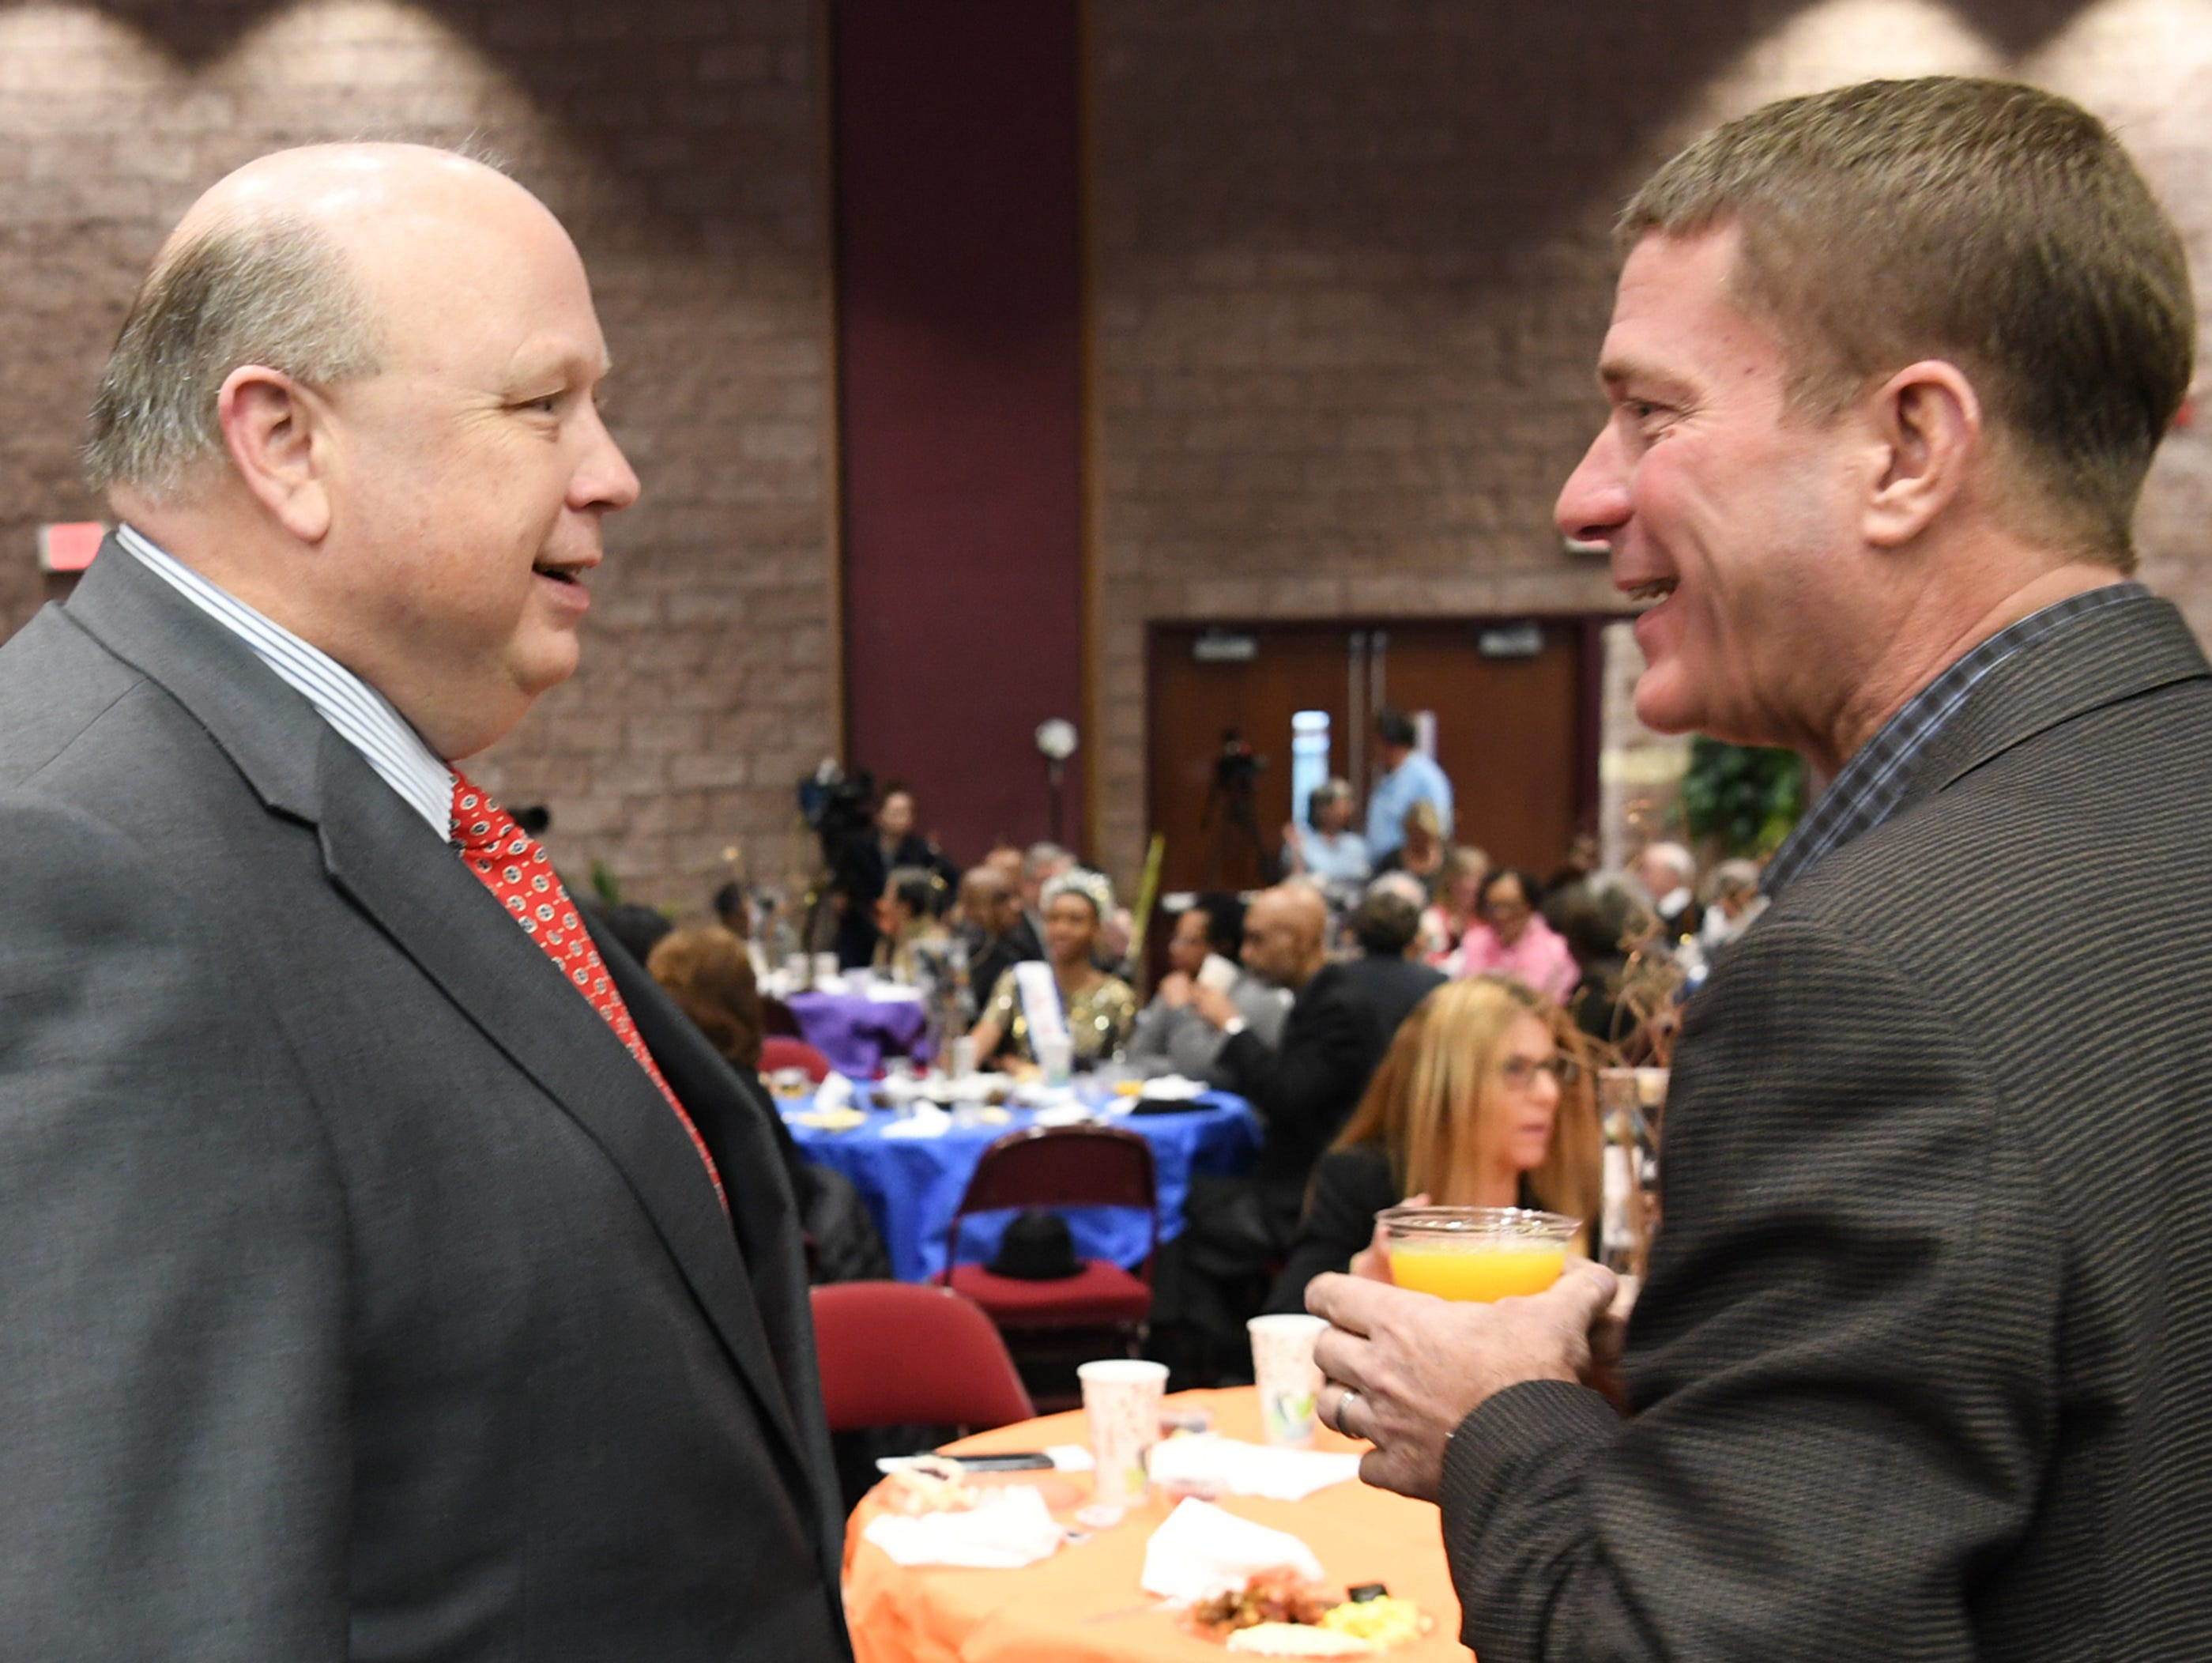 Evans Whitaker, left, Anderson University president and Jeff Roberts, right, city councilman, moments before the beginning of the Mayor's Martin Luther King Jr Breakfast in the Anderson Civic Center Friday, January 18, 2019.